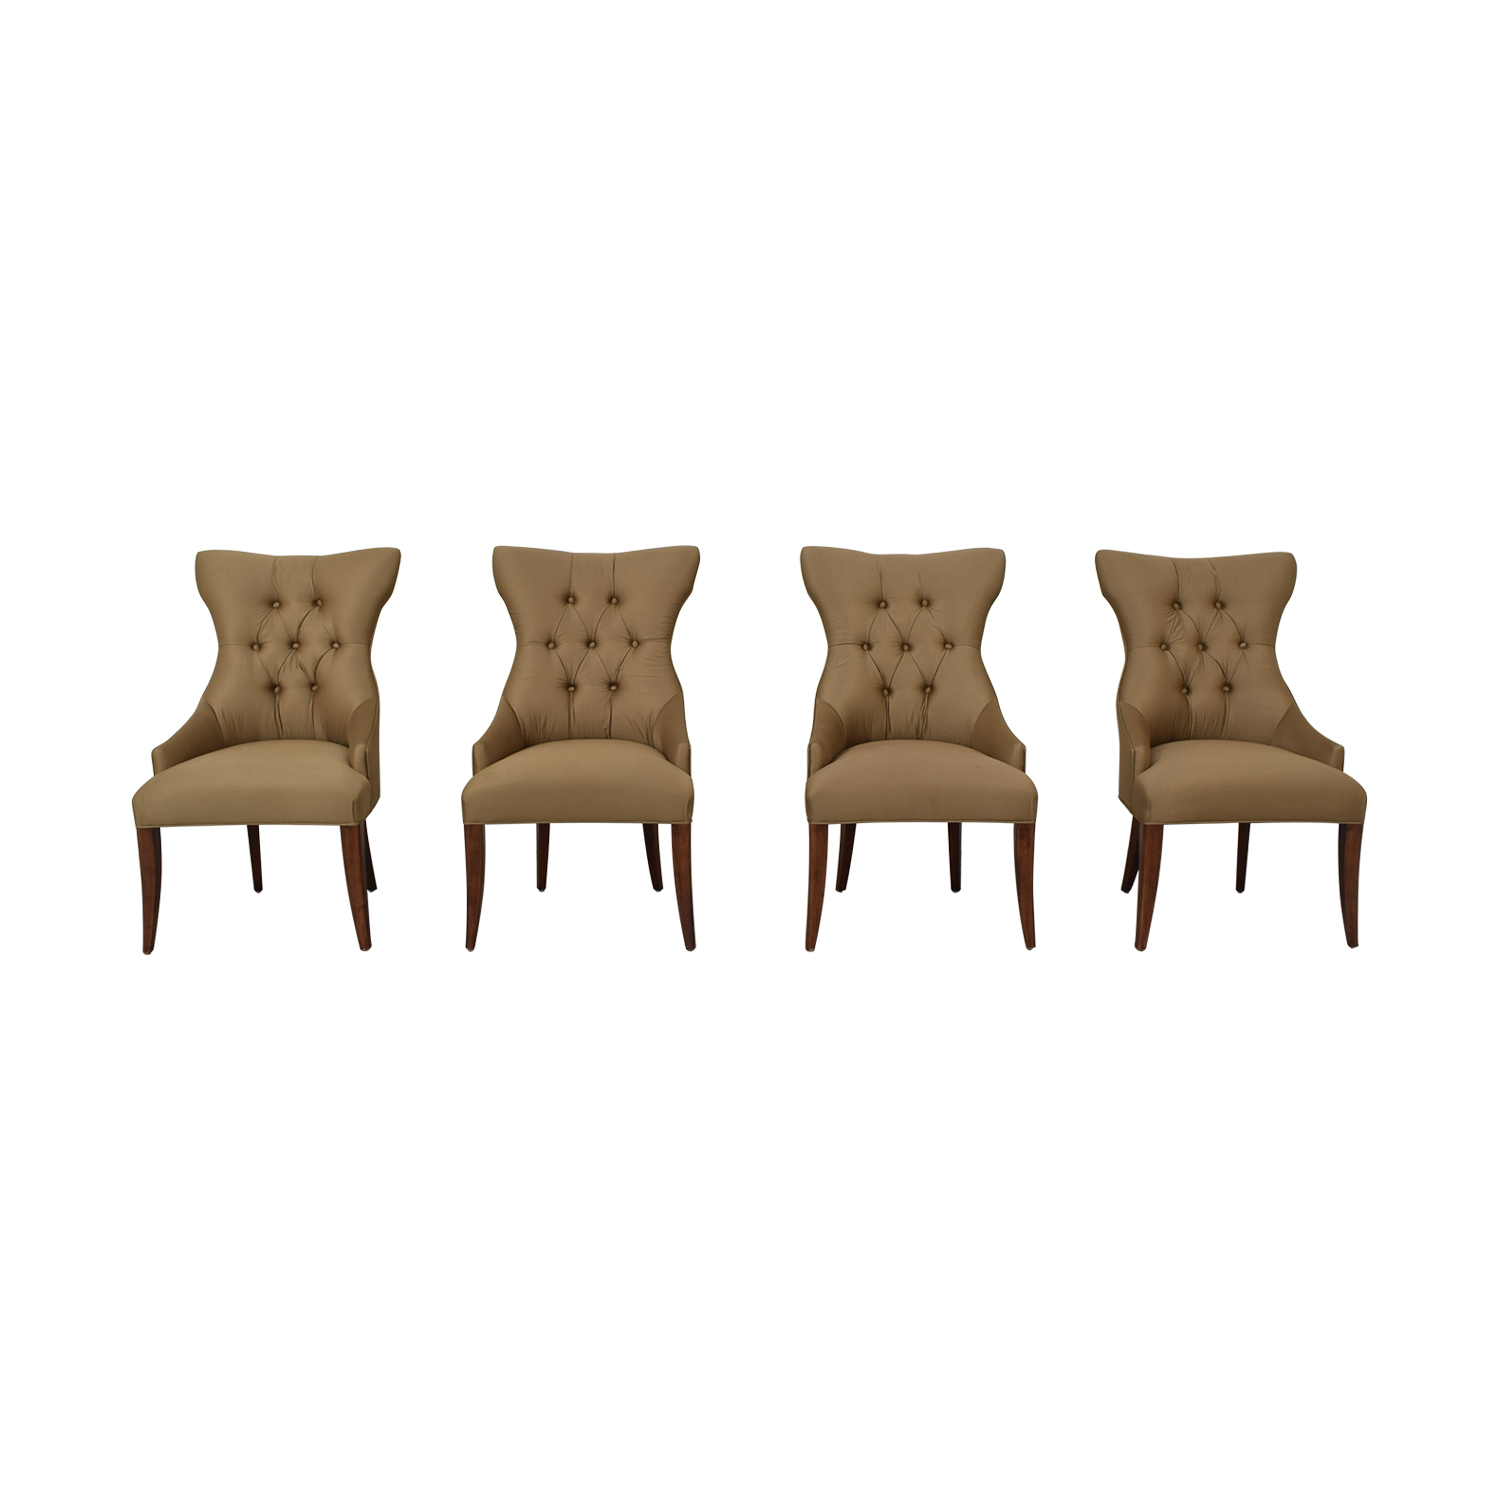 Bernhardt Bernhardt Gray Deco Dining Chairs nyc